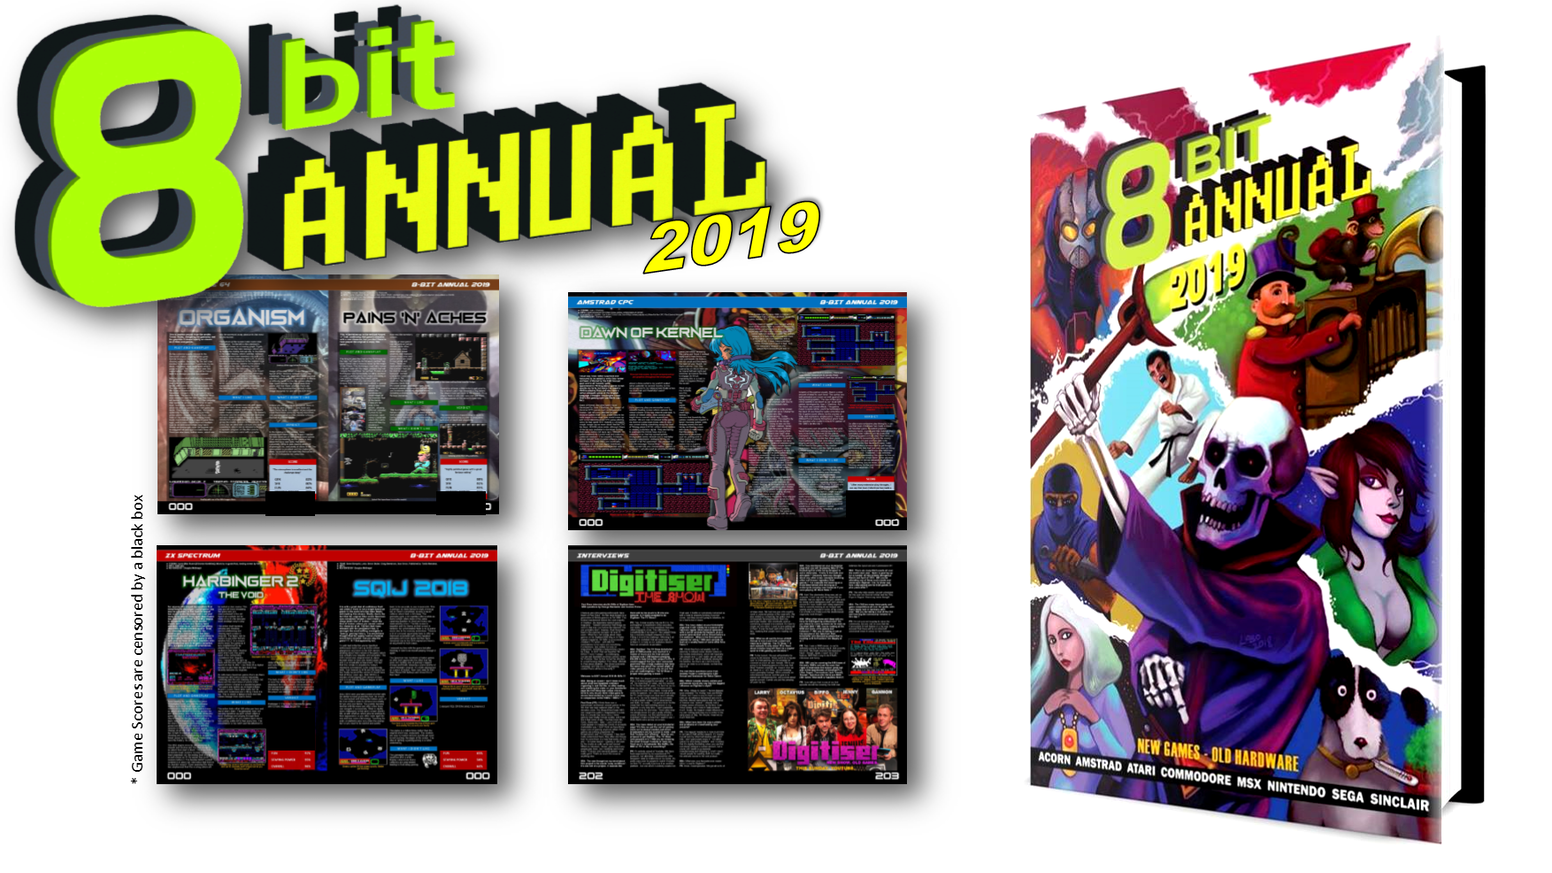 8-Bit Annual 2019 is the second printed annual from the 8 Bit Annual team, covering the latest games for retro computers and consoles.